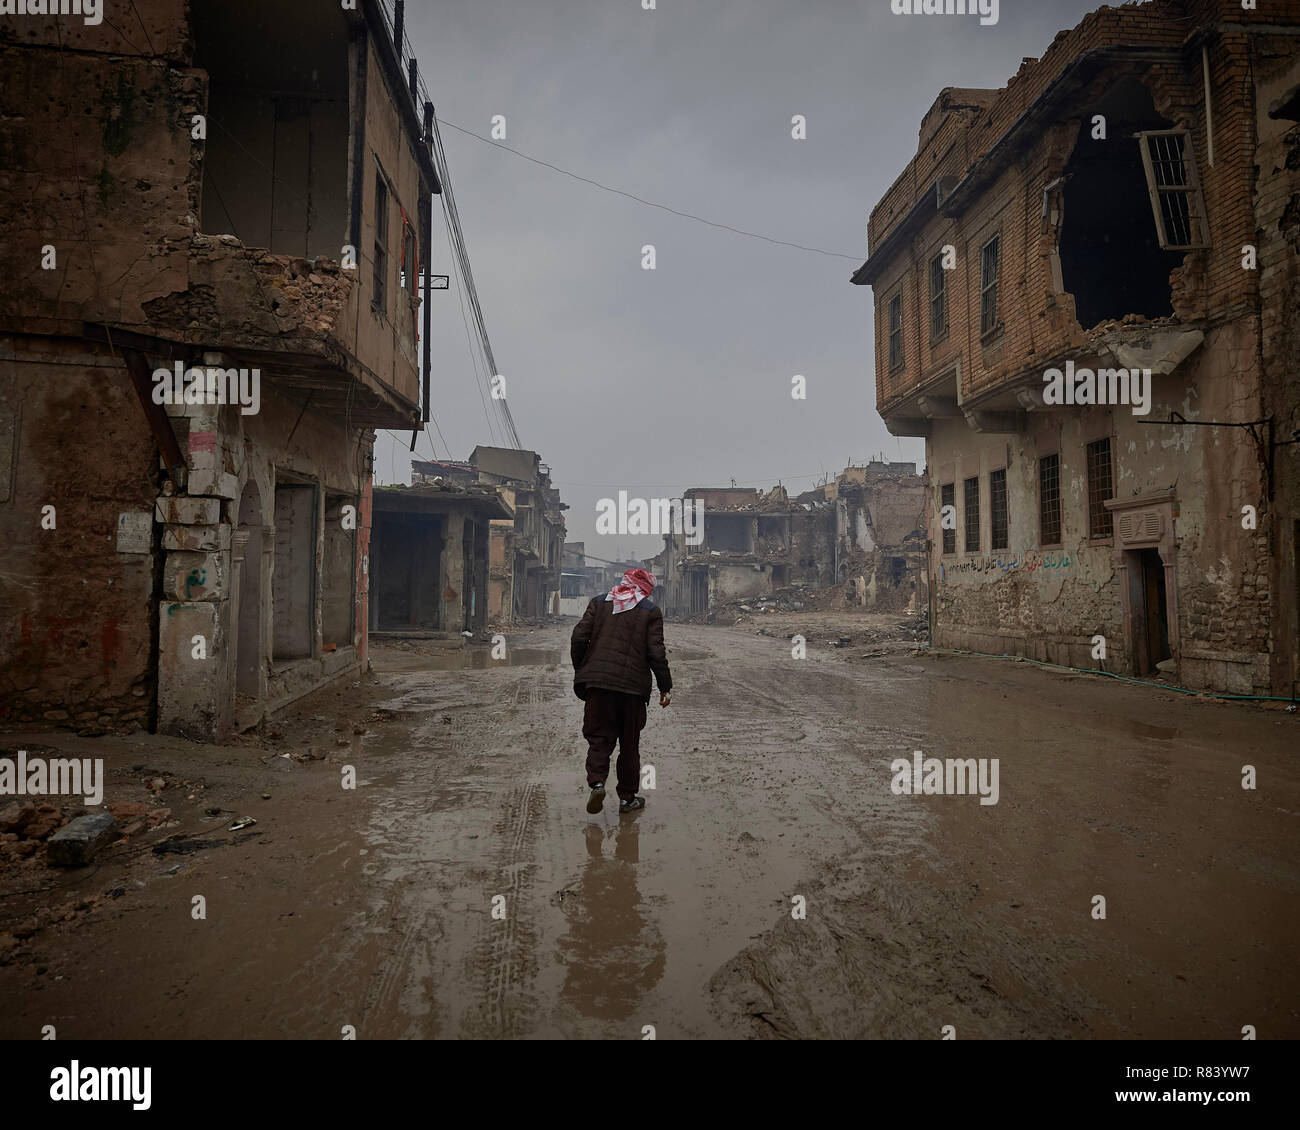 Qasim Yahia Ali, 75, walks along a rainy street in the old city of Mosul, Iraq. His house was destroyed during the 2017 Battle of Mosul. - Stock Image